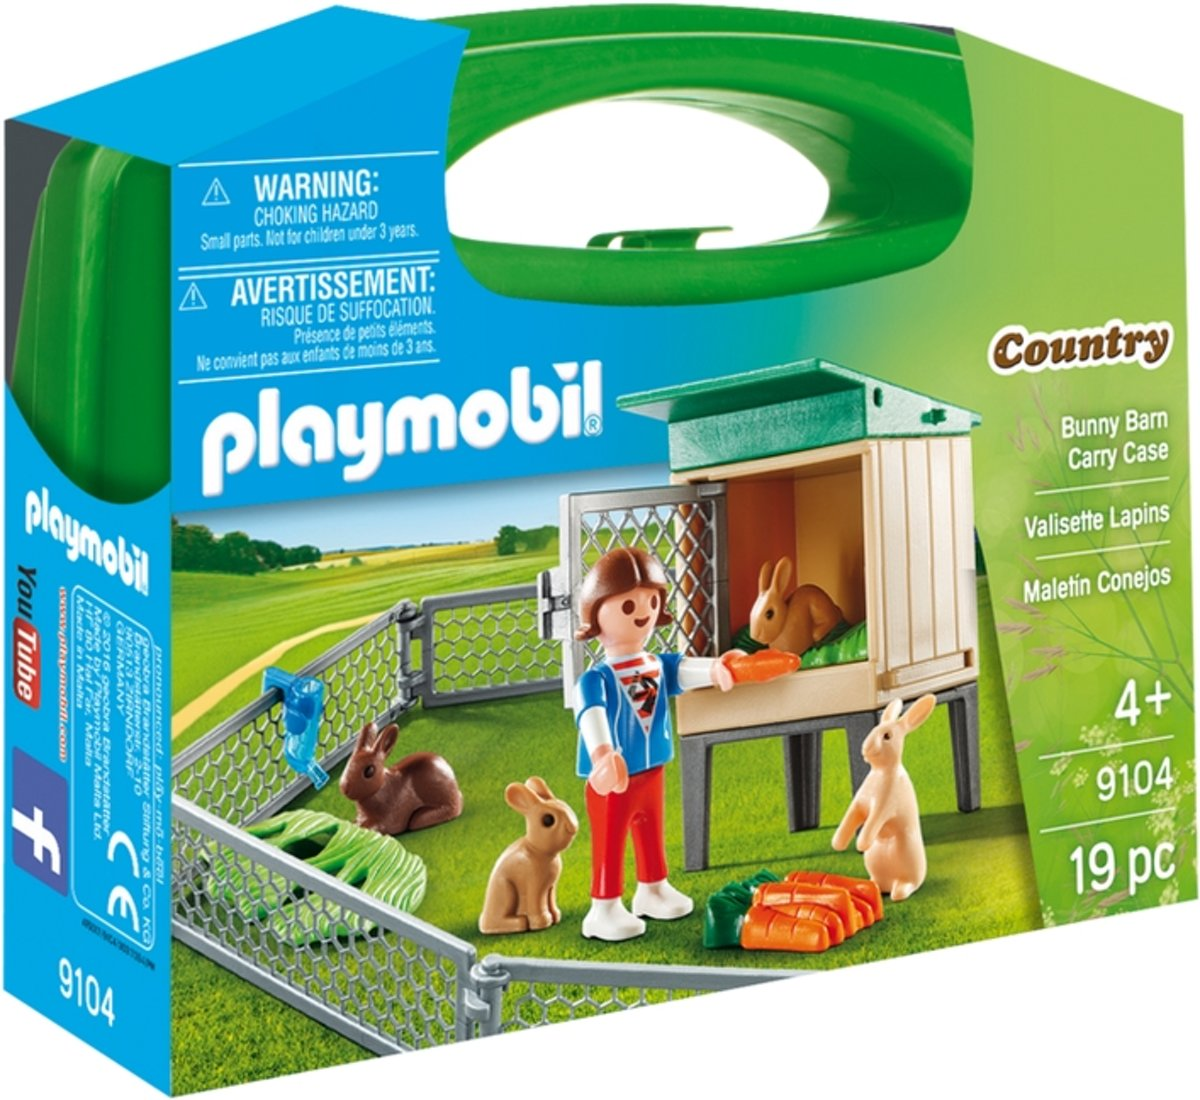 Playmobil 9104 Country Bunny Barn